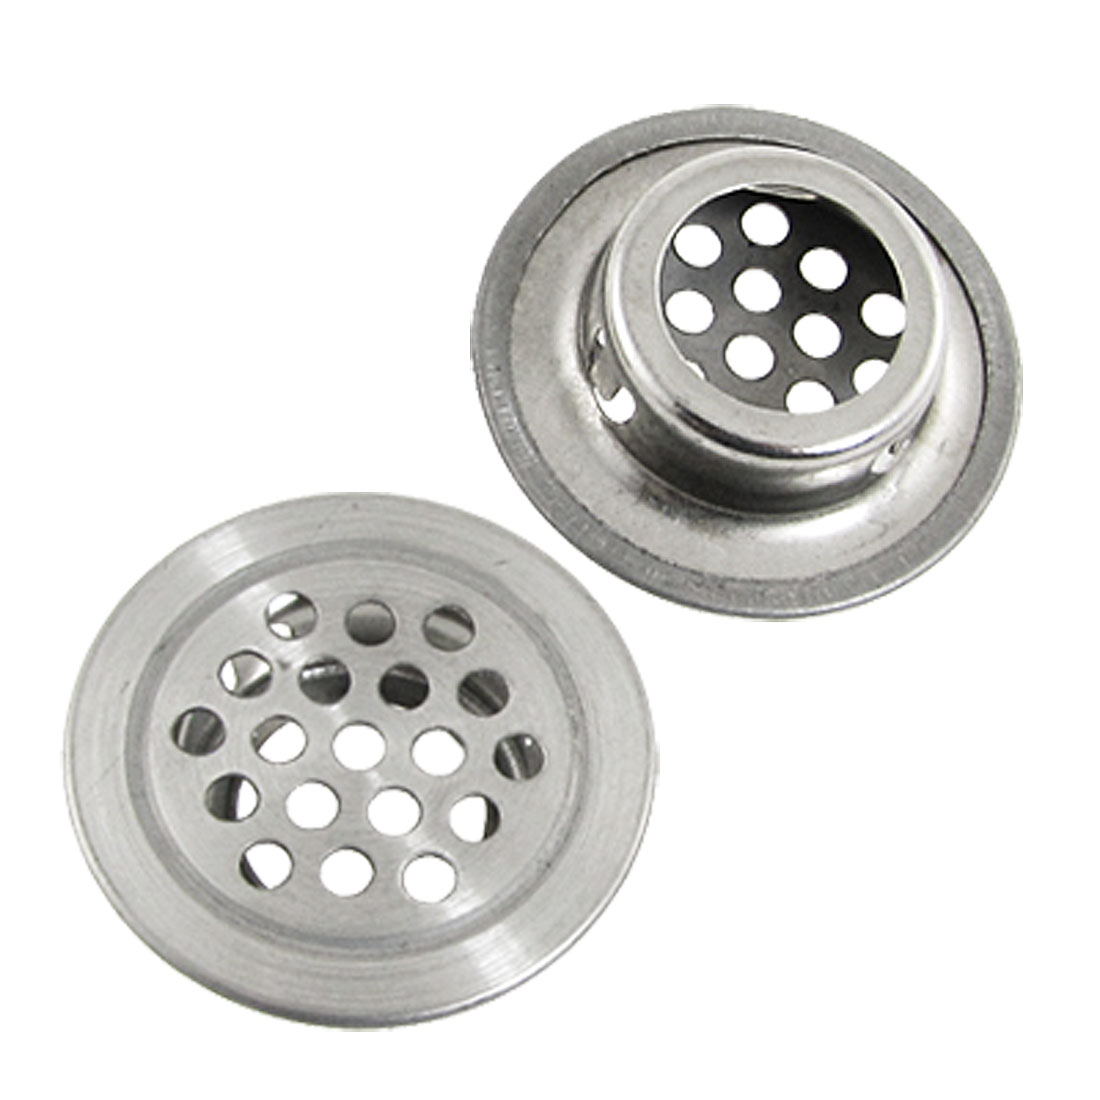 5 Pcs Metal Mesh Hole Round Louver Exhaust Air Vent 3cm 1.2""